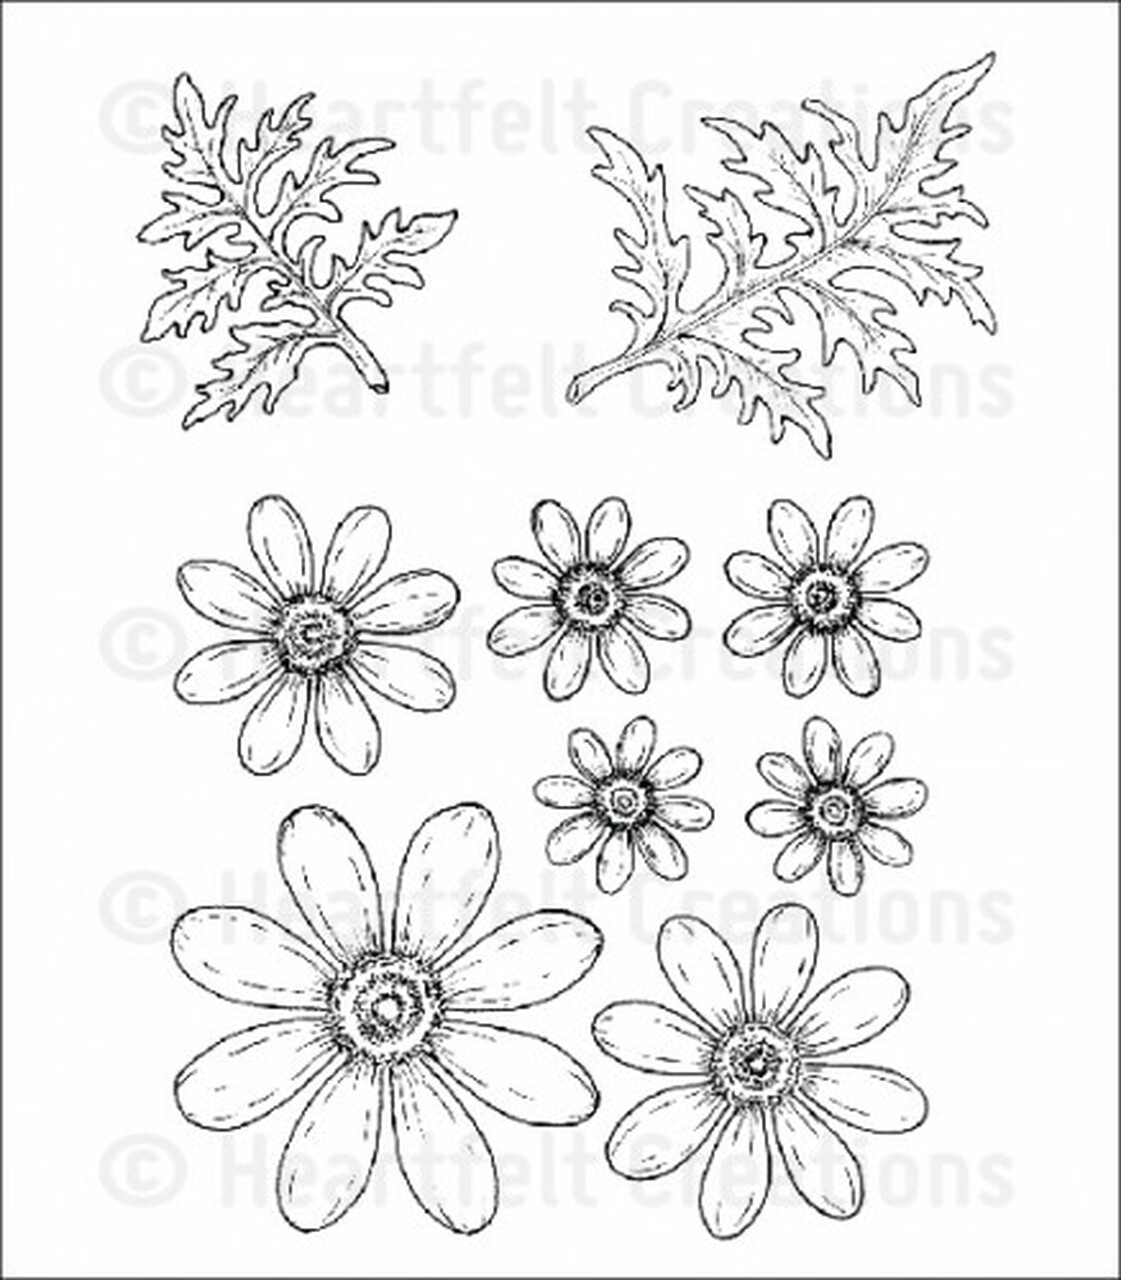 Delightful Daisies Cling Stamp Set HCPC3656